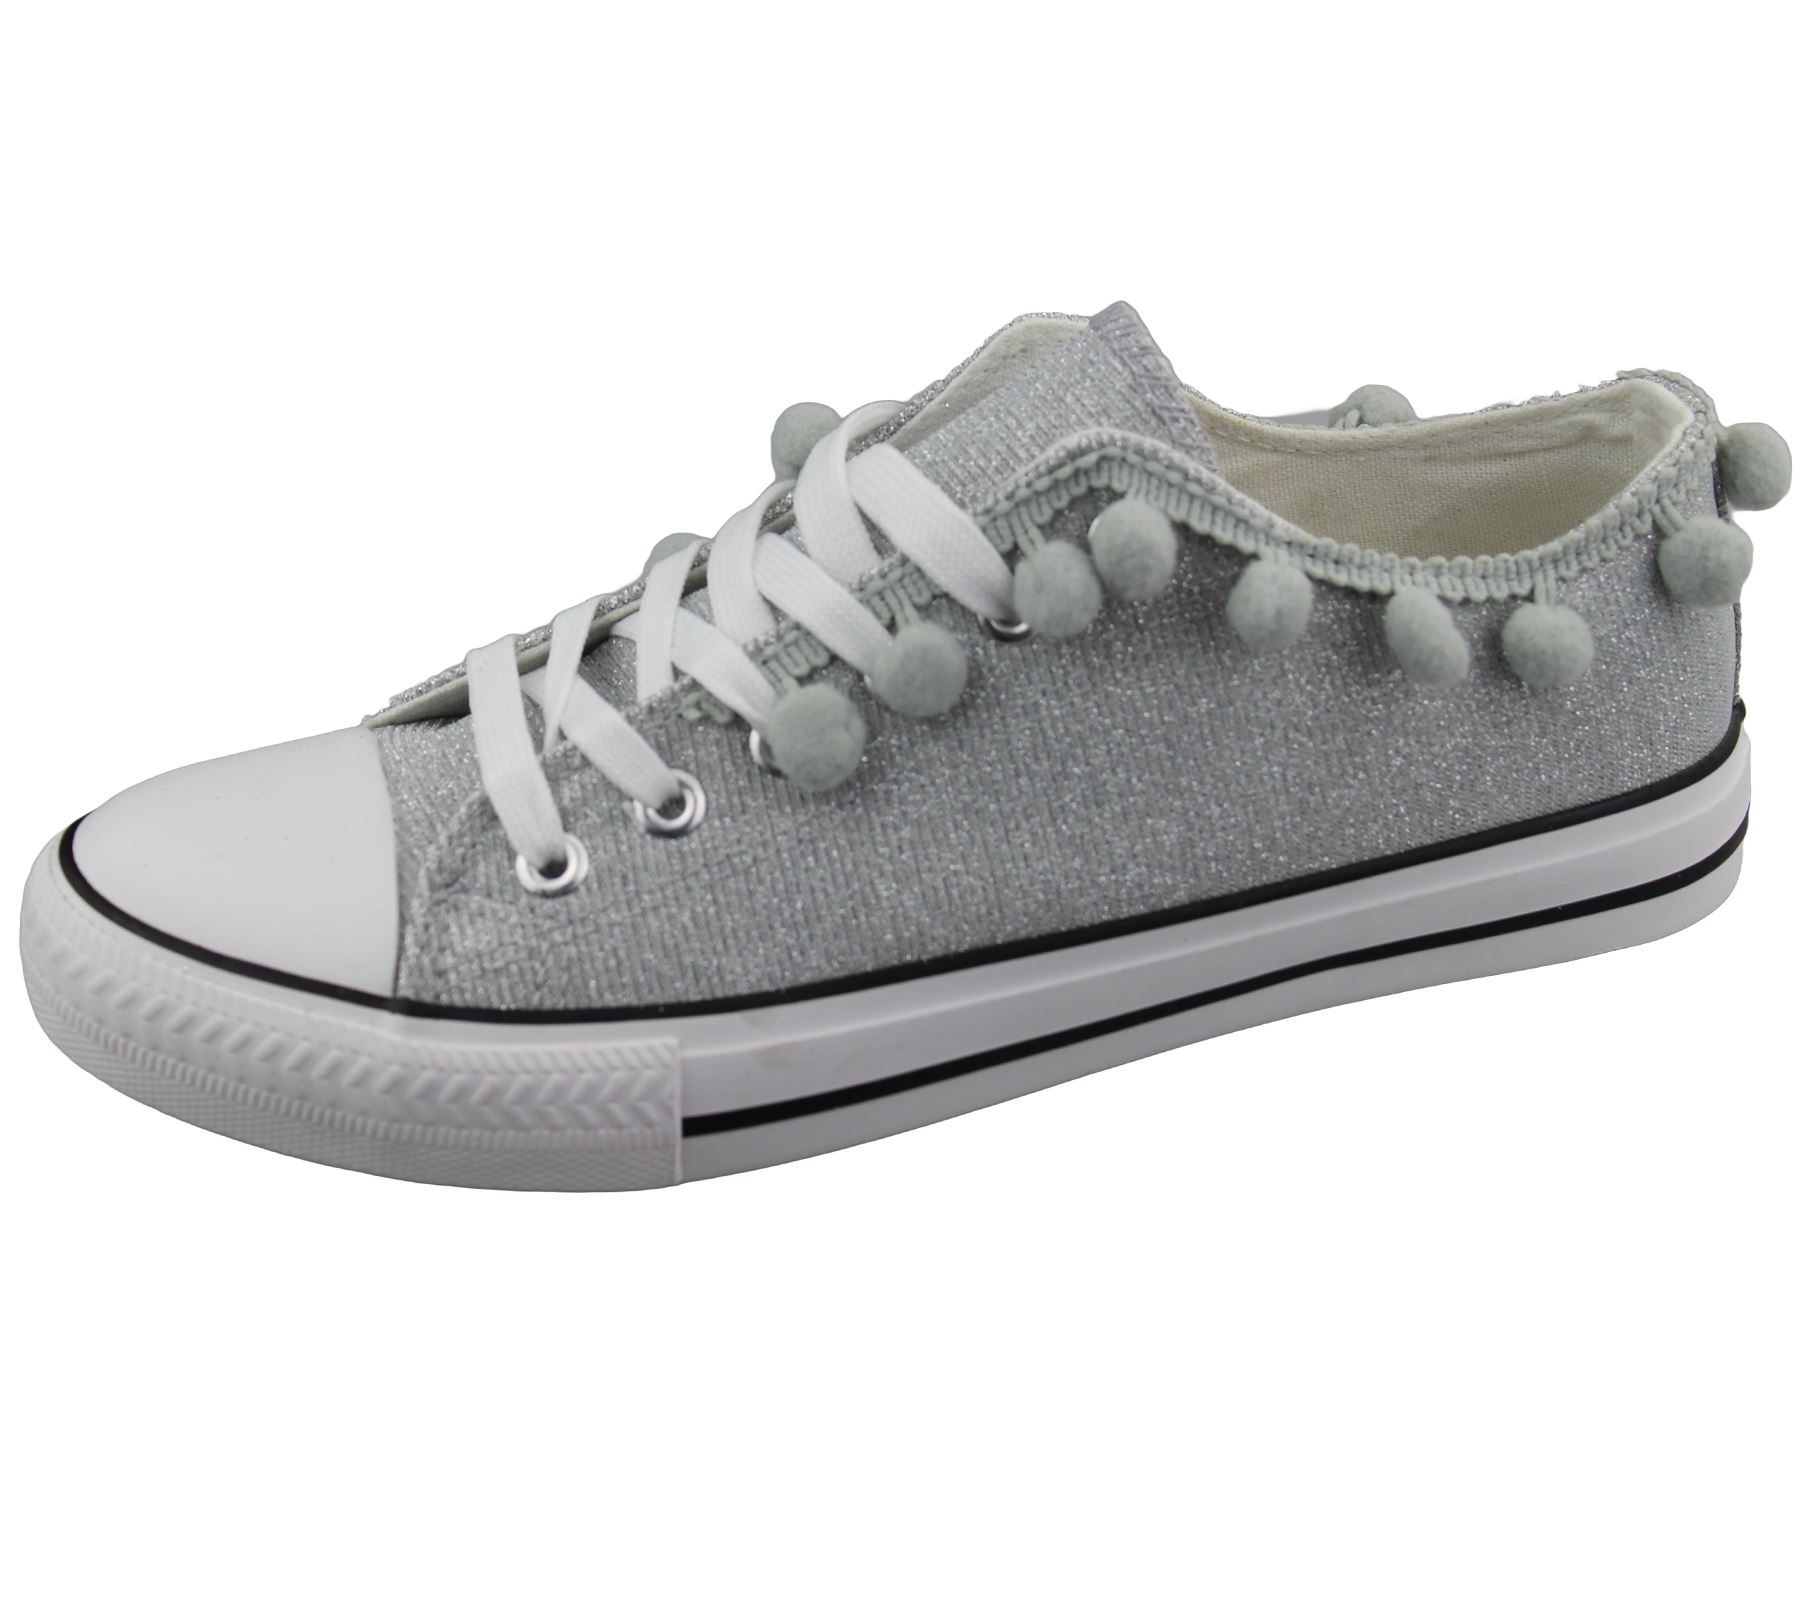 Womens-Sneakers-Flat-Pumps-Ladies-Glittered-Summer-Plimsole-Canvas-Shoes thumbnail 12